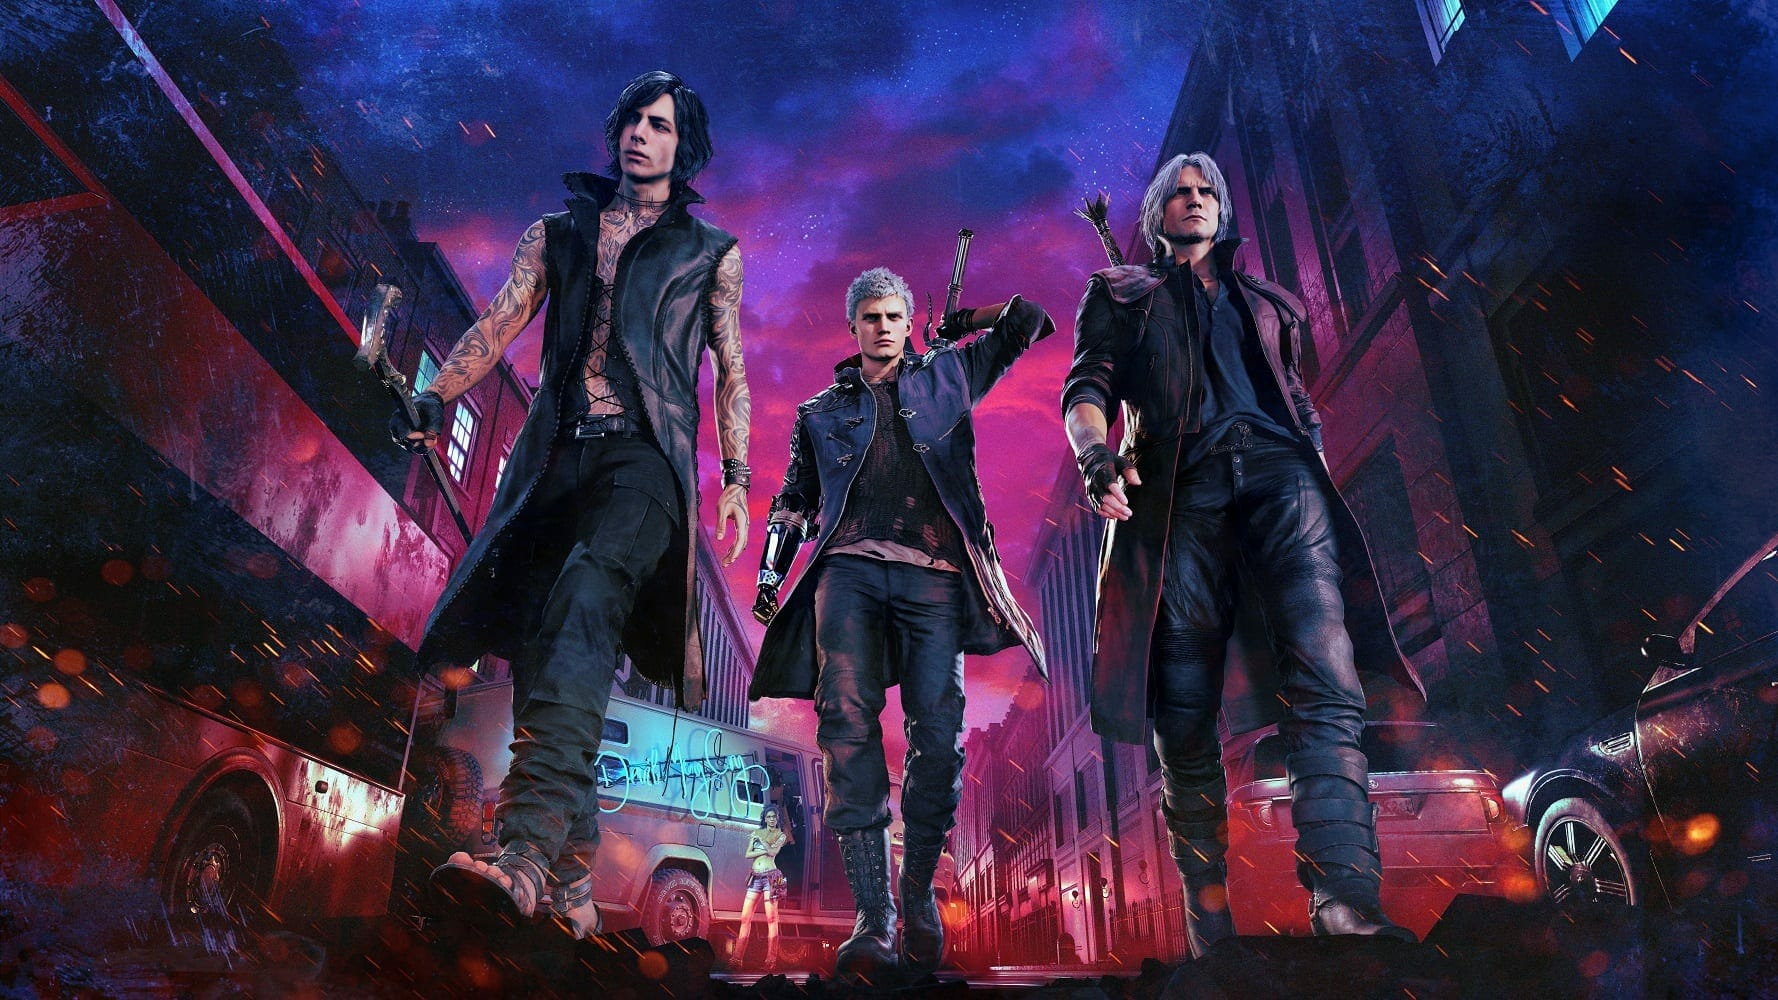 Devil May Cry 5 will run at 4k/60fps on PS4 Pro